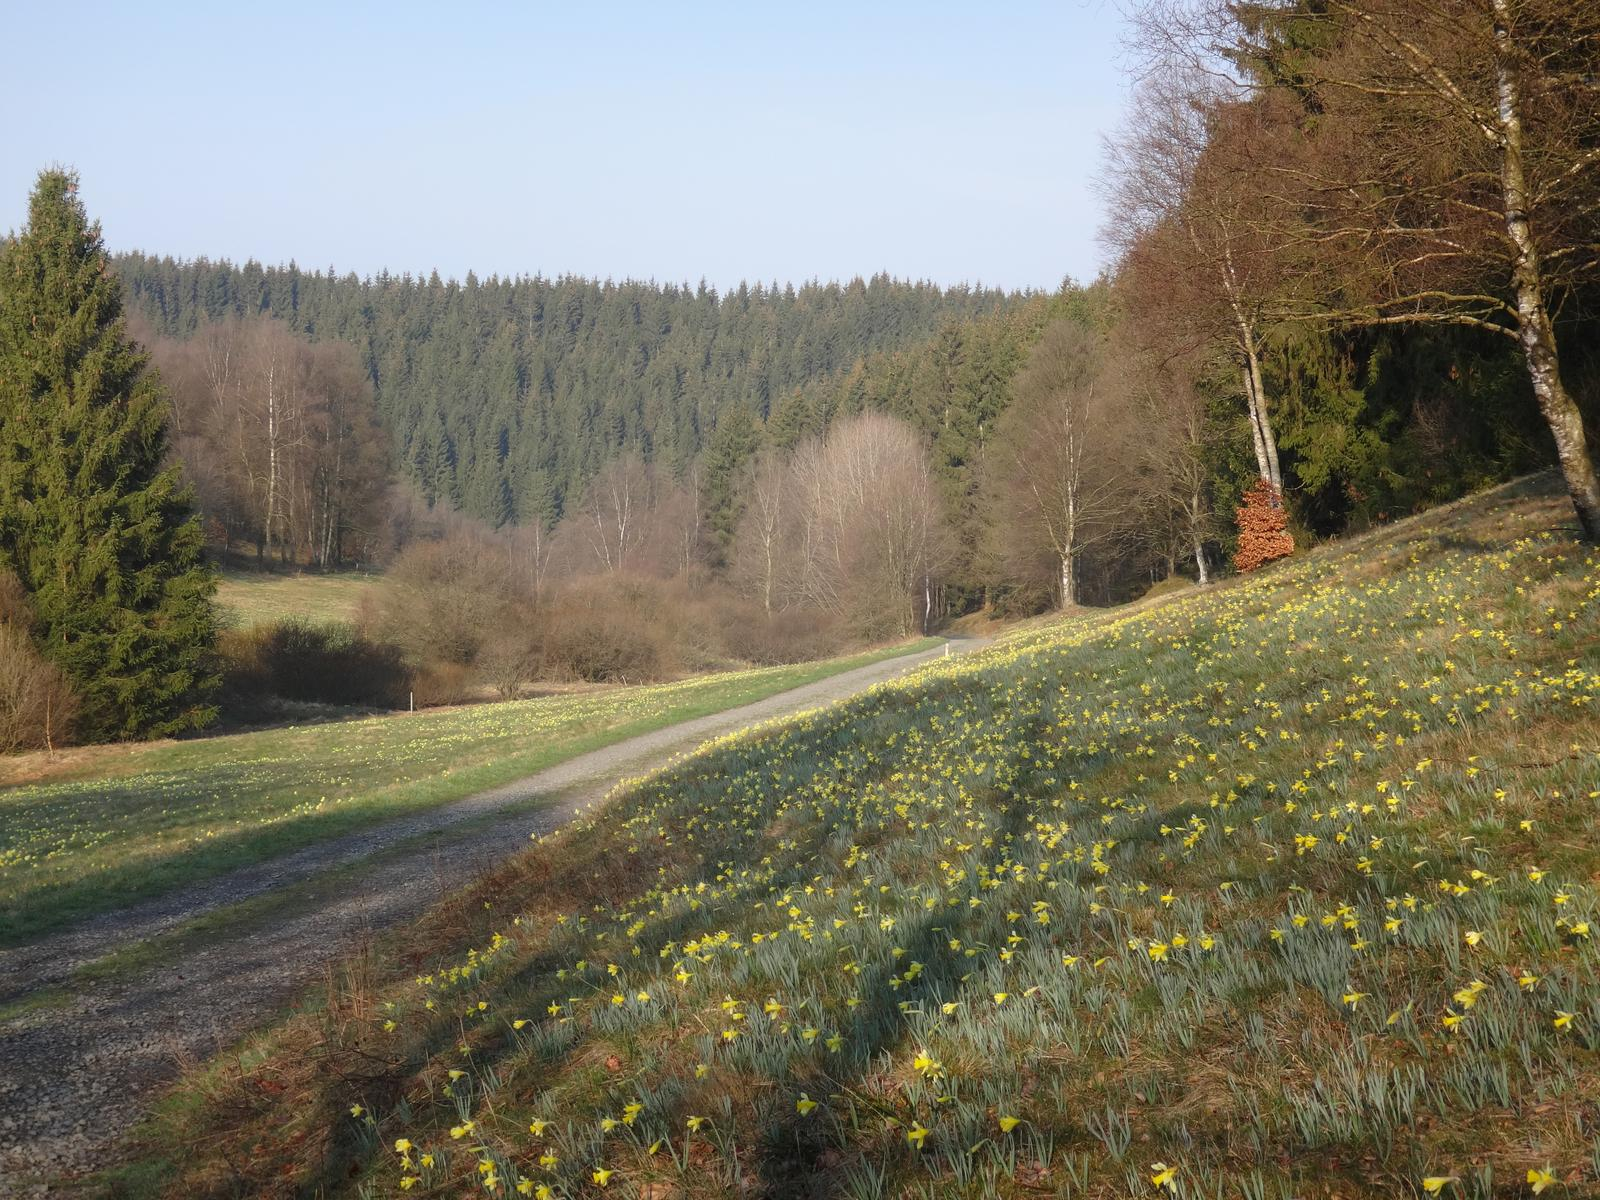 Photo of Perlenbach valley and wild daffodils - Narzissen 30 km